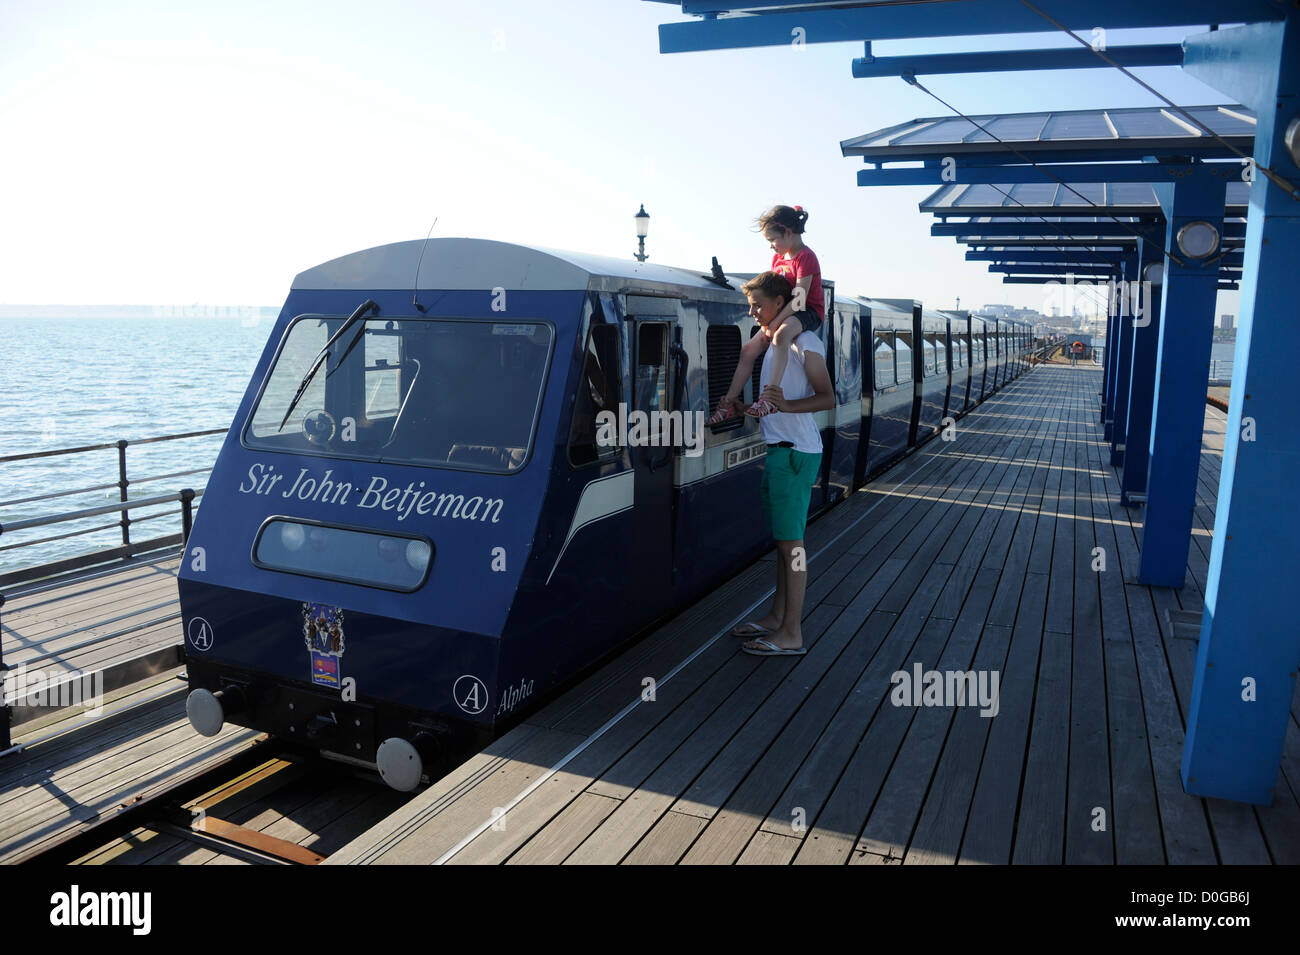 Sir John Betjeman train on the pier at Southend on Sea, Essex. At 1.34 miles long it is the longest pleasure pier - Stock Image